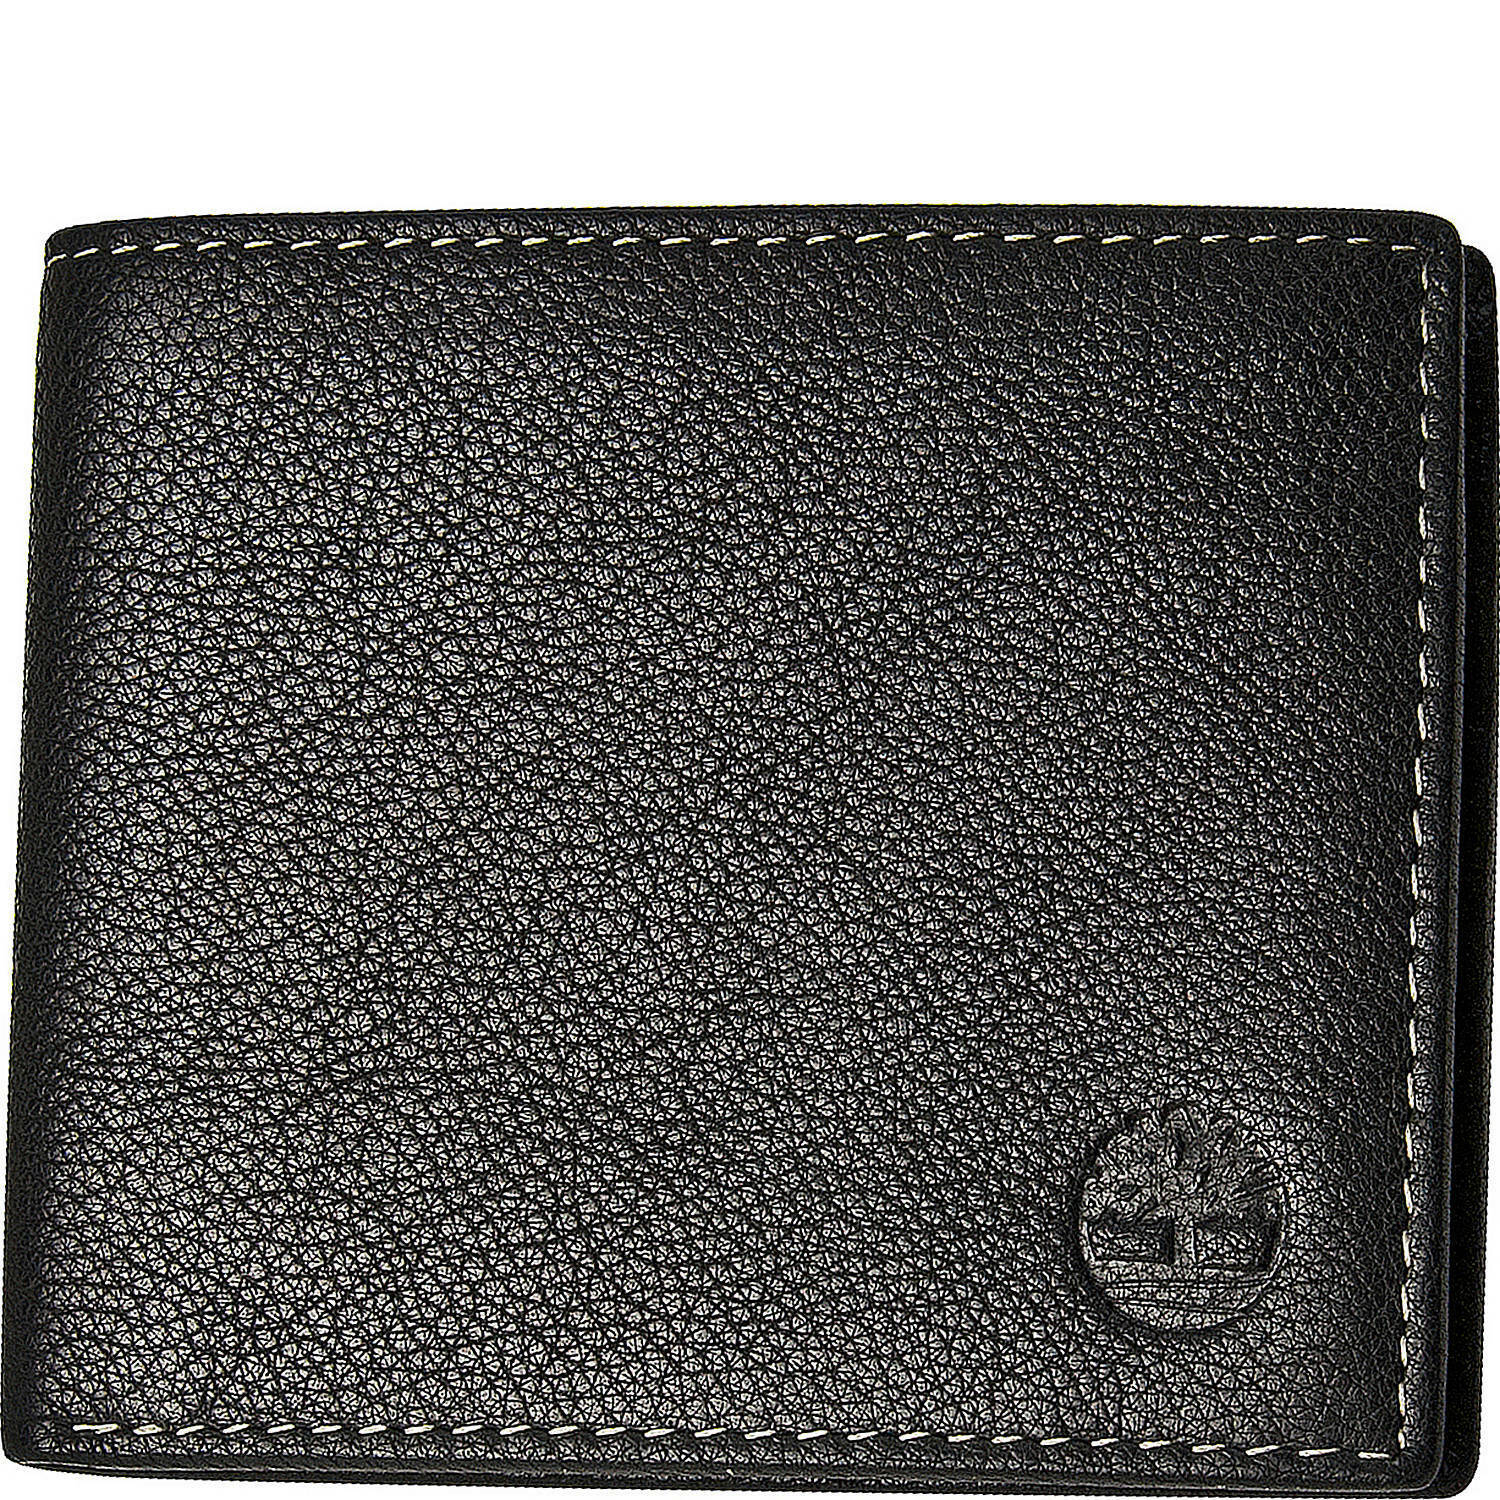 Timberland Men's Genuine Leather Bifold Passcase Wallet